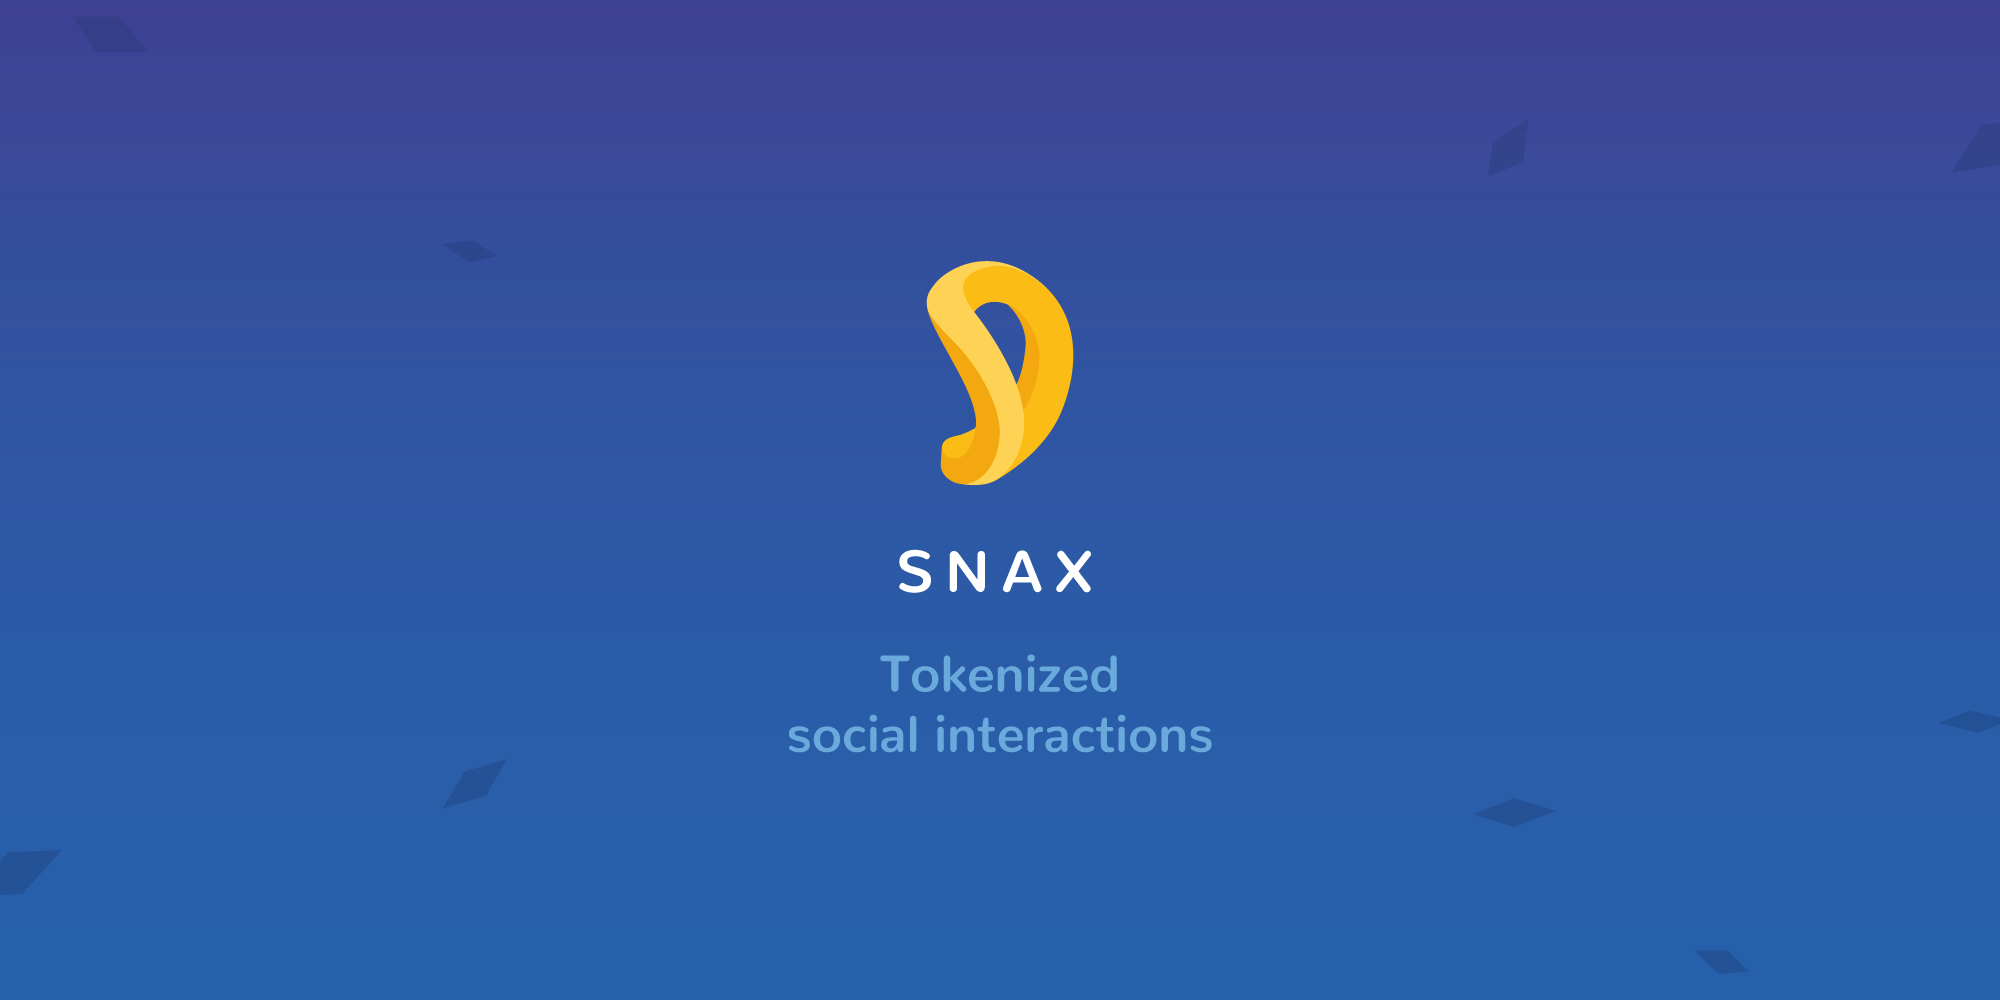 SNAX Brings Real Value To Social Media Content